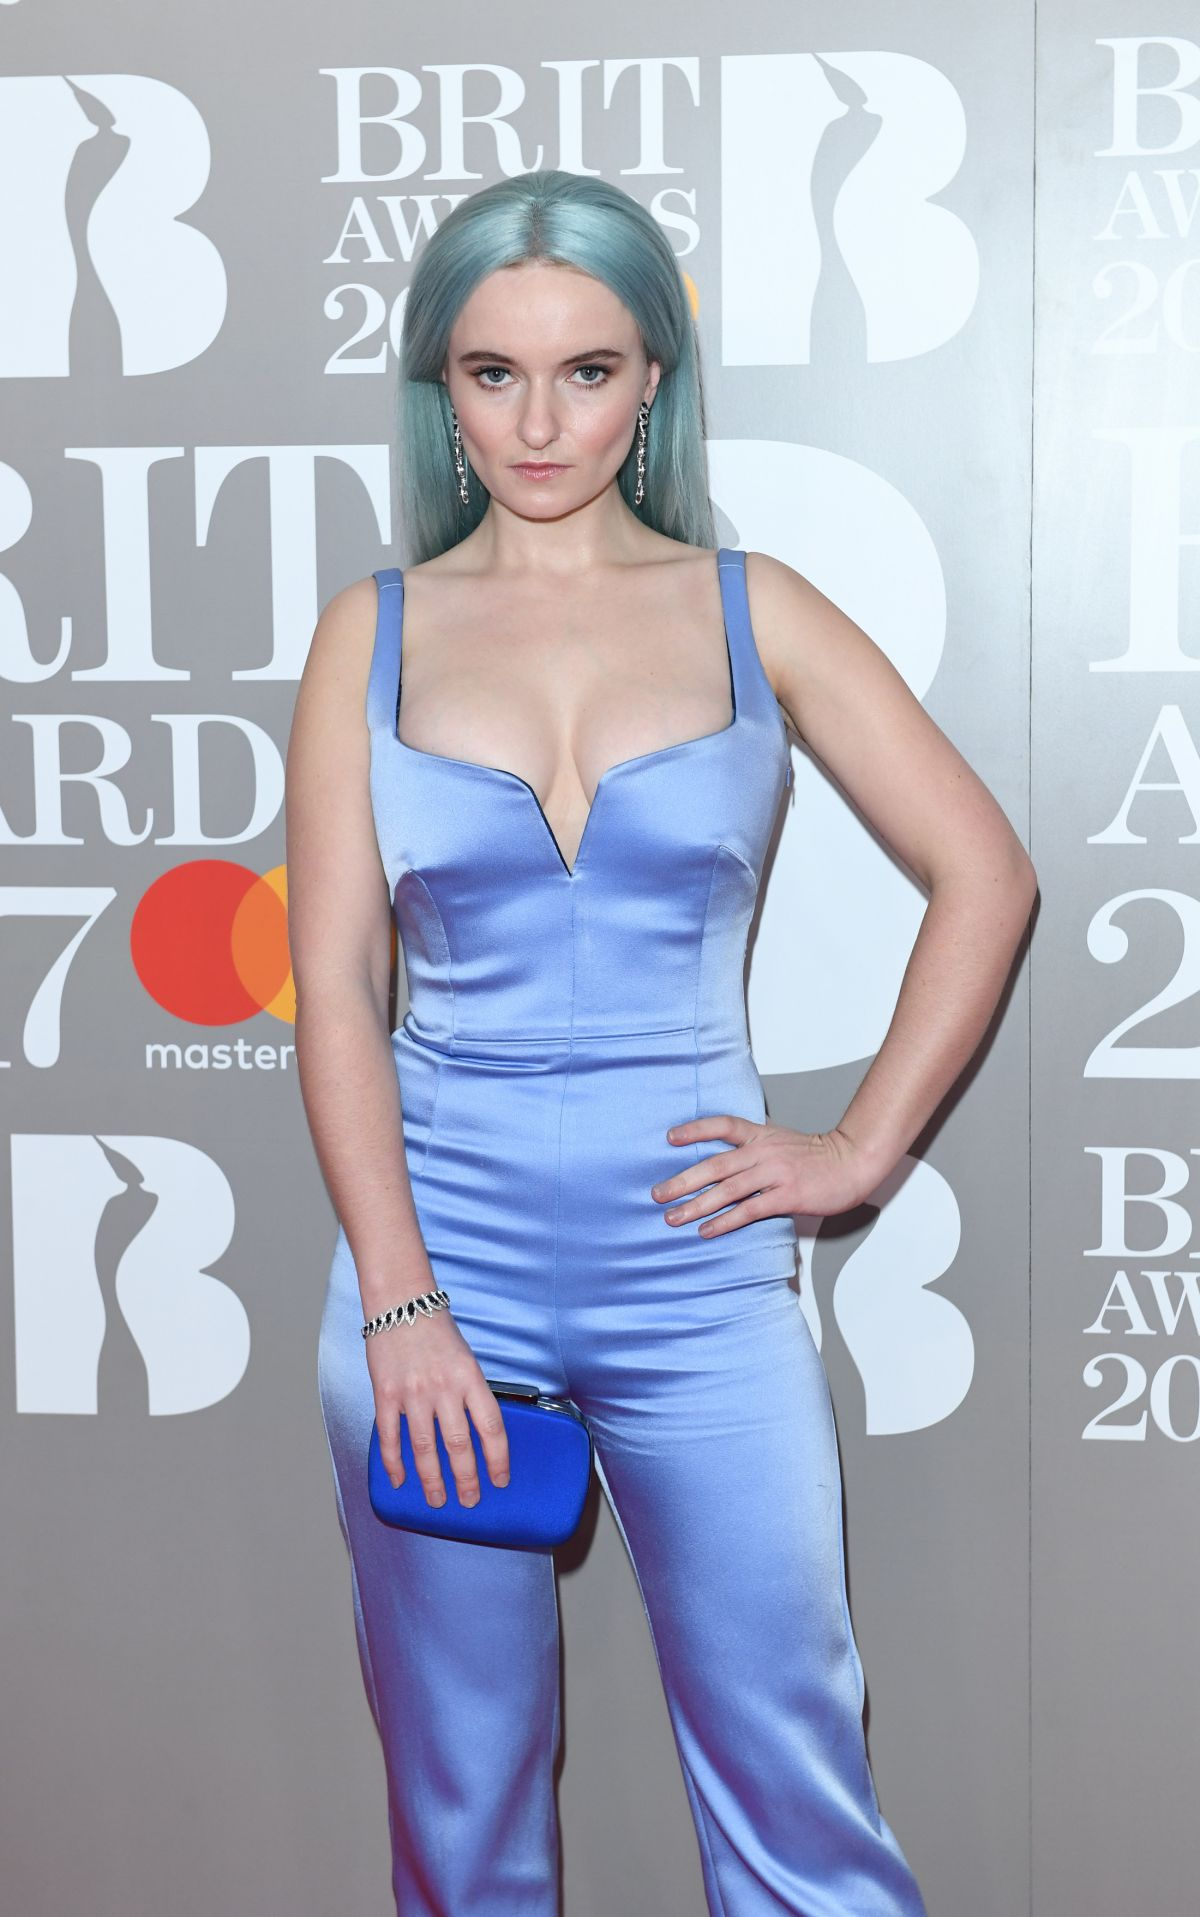 GRACE CHATTO at Brit Awards 2017 in London 02/22/2017